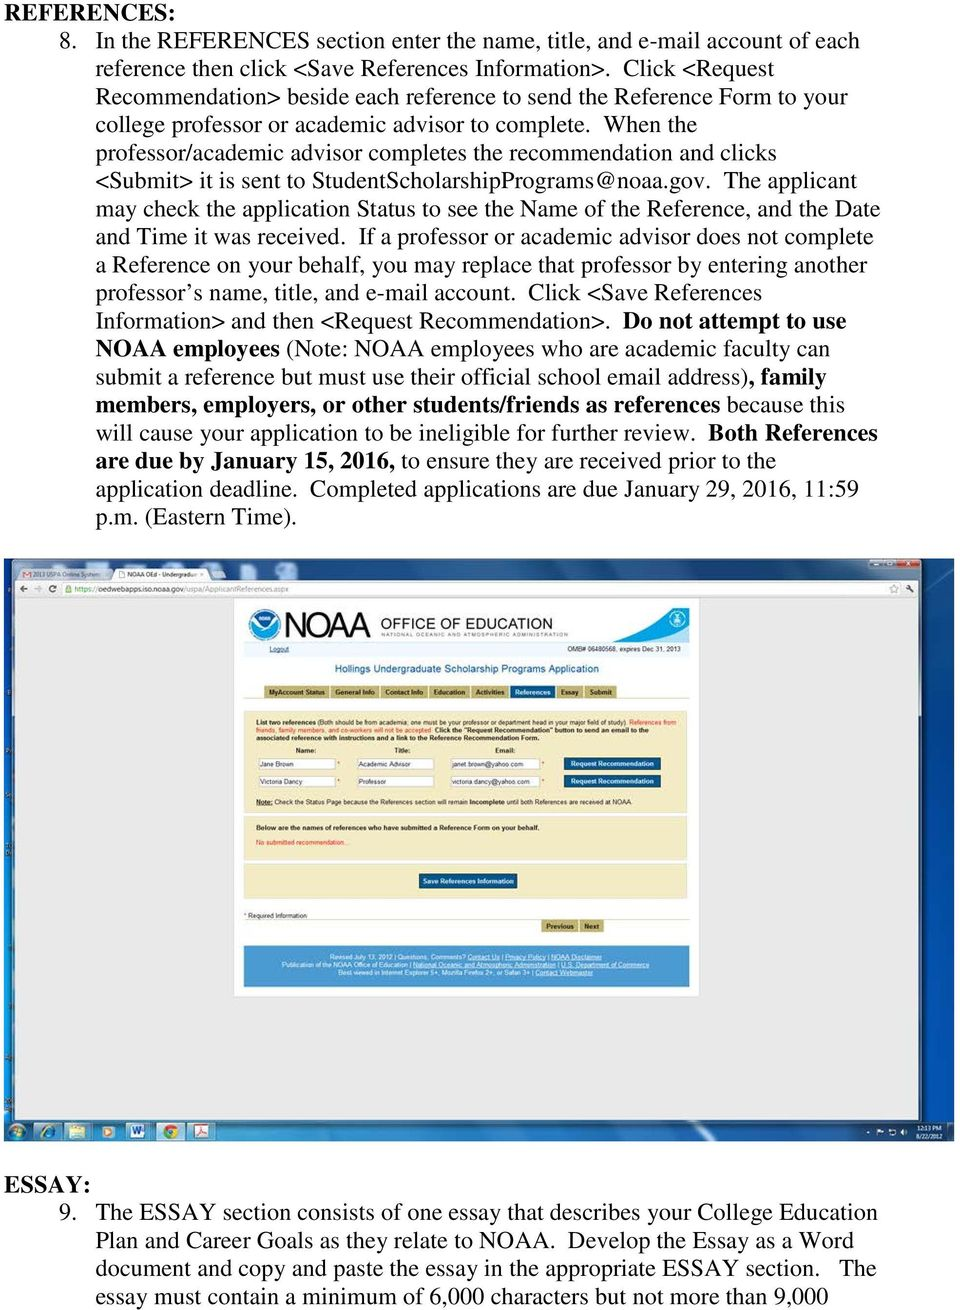 When the professor/academic advisor completes the recommendation and clicks <Submit> it is sent to StudentScholarshipPrograms@noaa.gov.